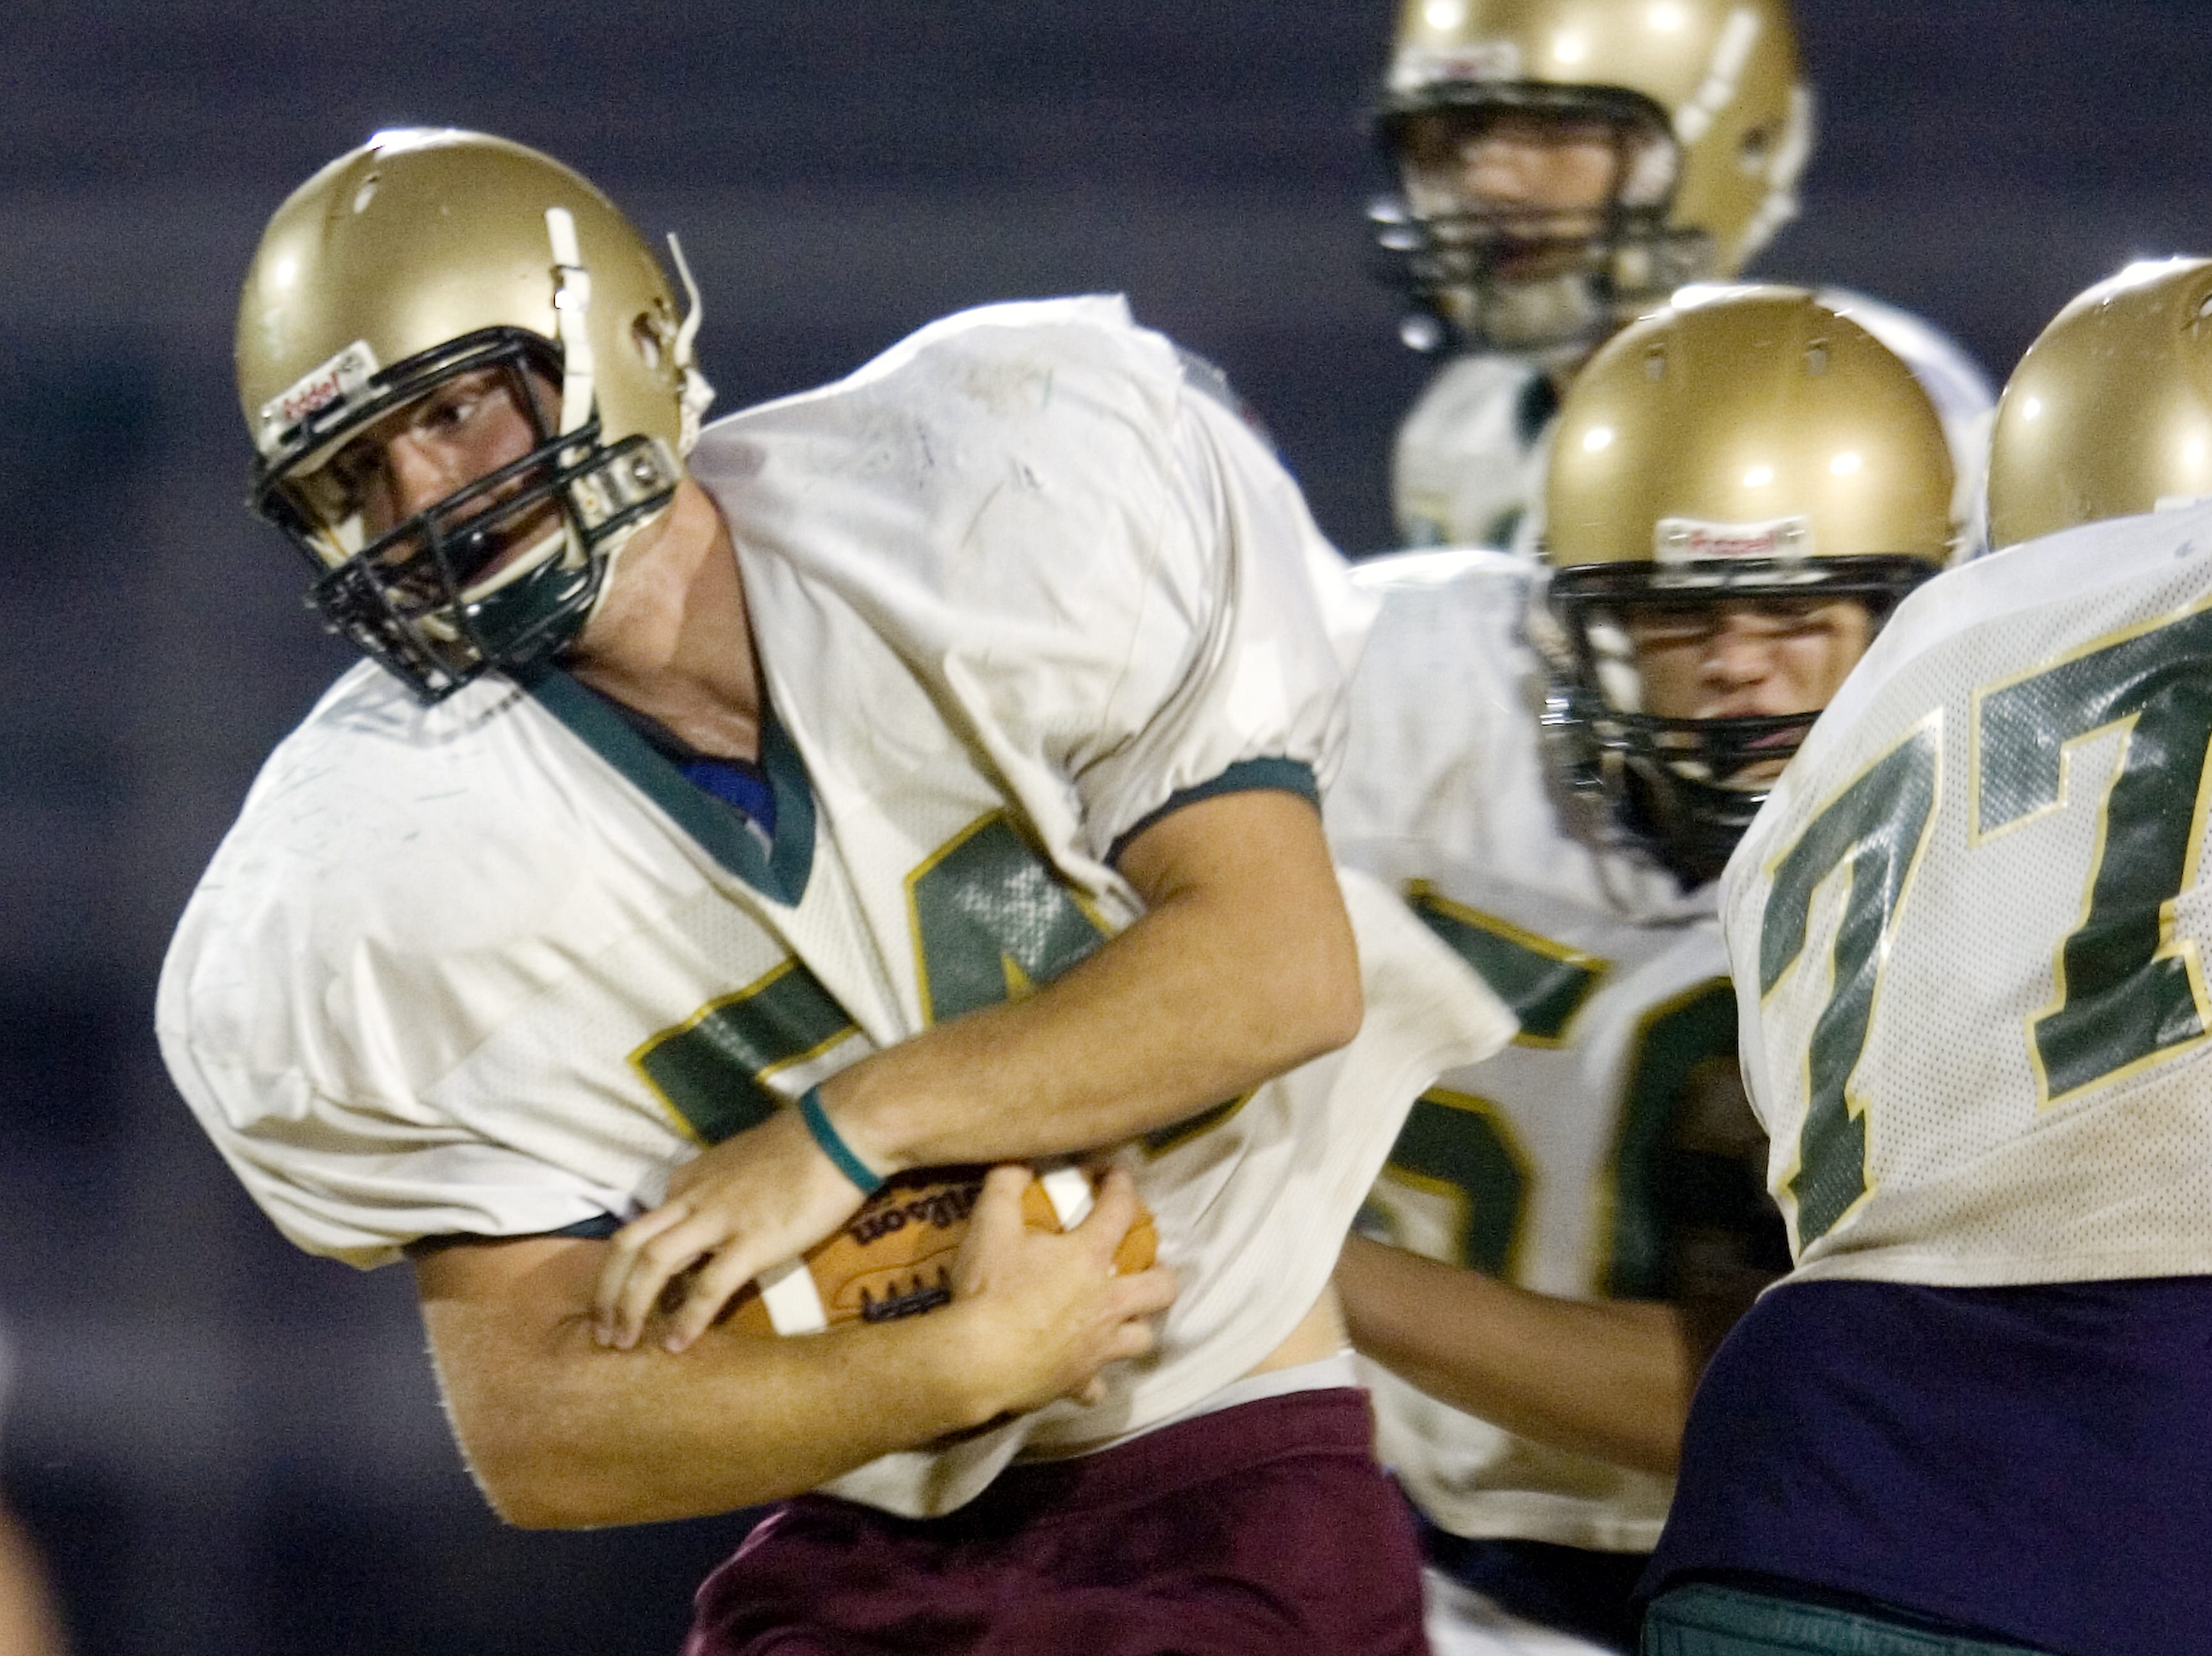 In 2008, Eric Cady runs with the ball during a Vestal High School football team practice at Dick Hoover Stadium.